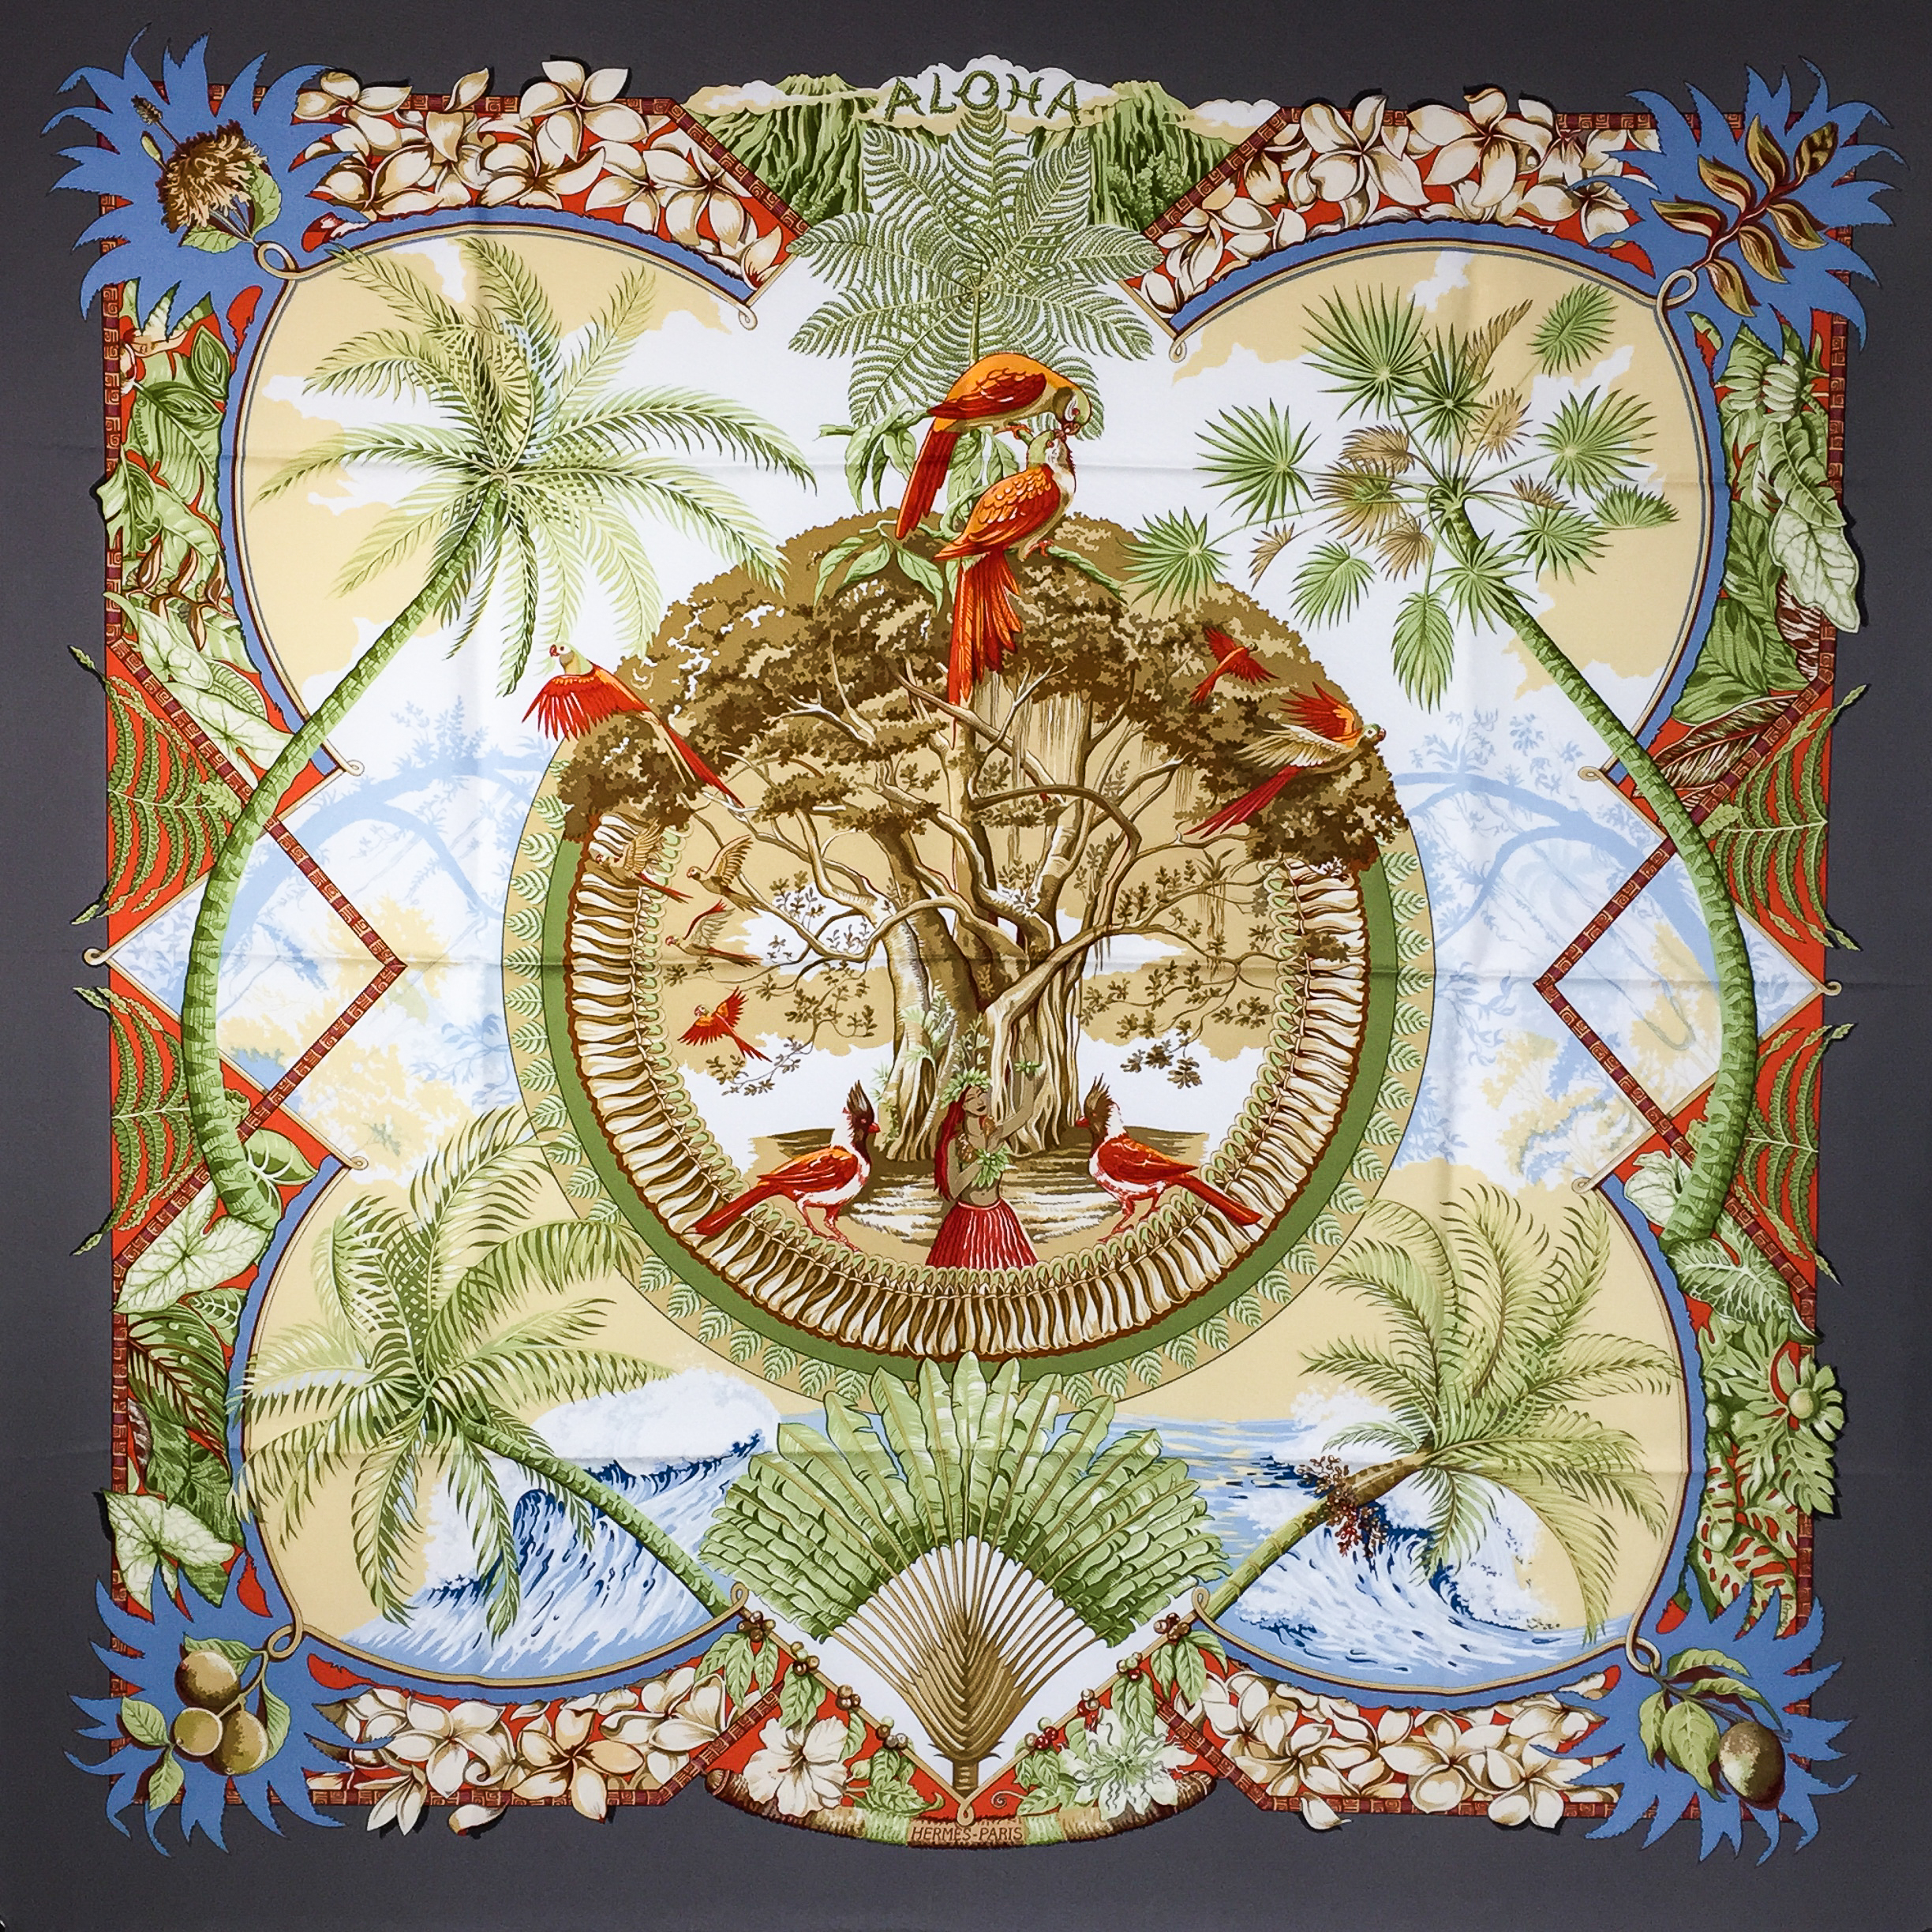 Aloha Hermes silk scarf by Laurence Toutsy Bourthoumieux Thioune was issued in 2002